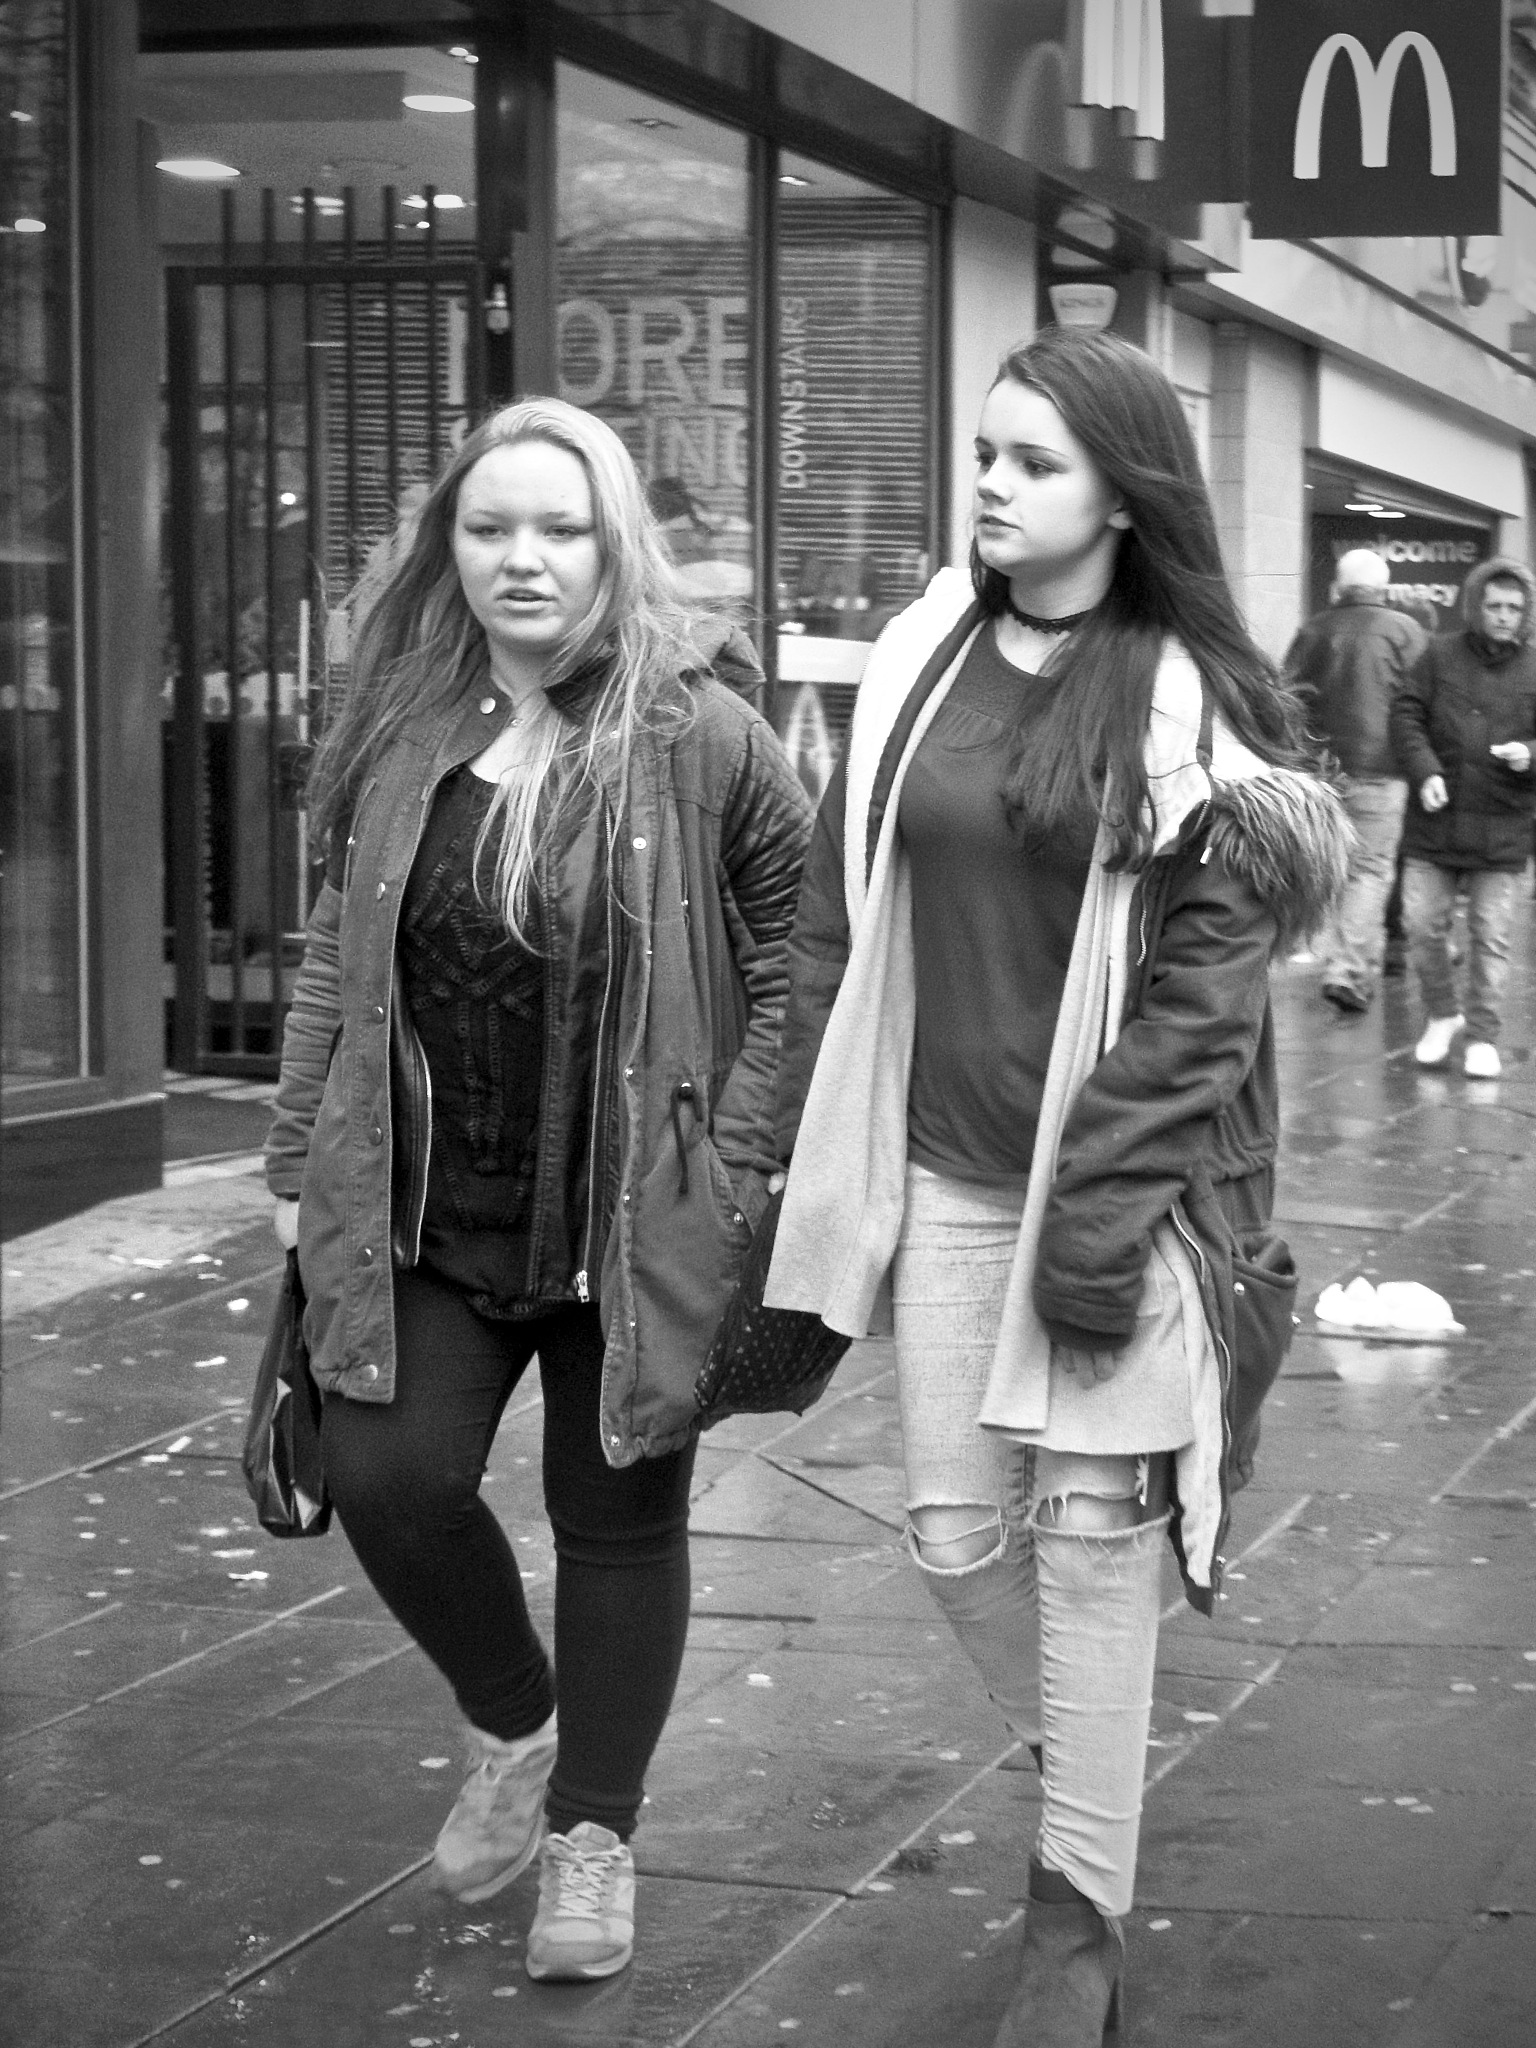 Piccadilly, Manchester City Centre, Manchester, UK. by StreetCrusader